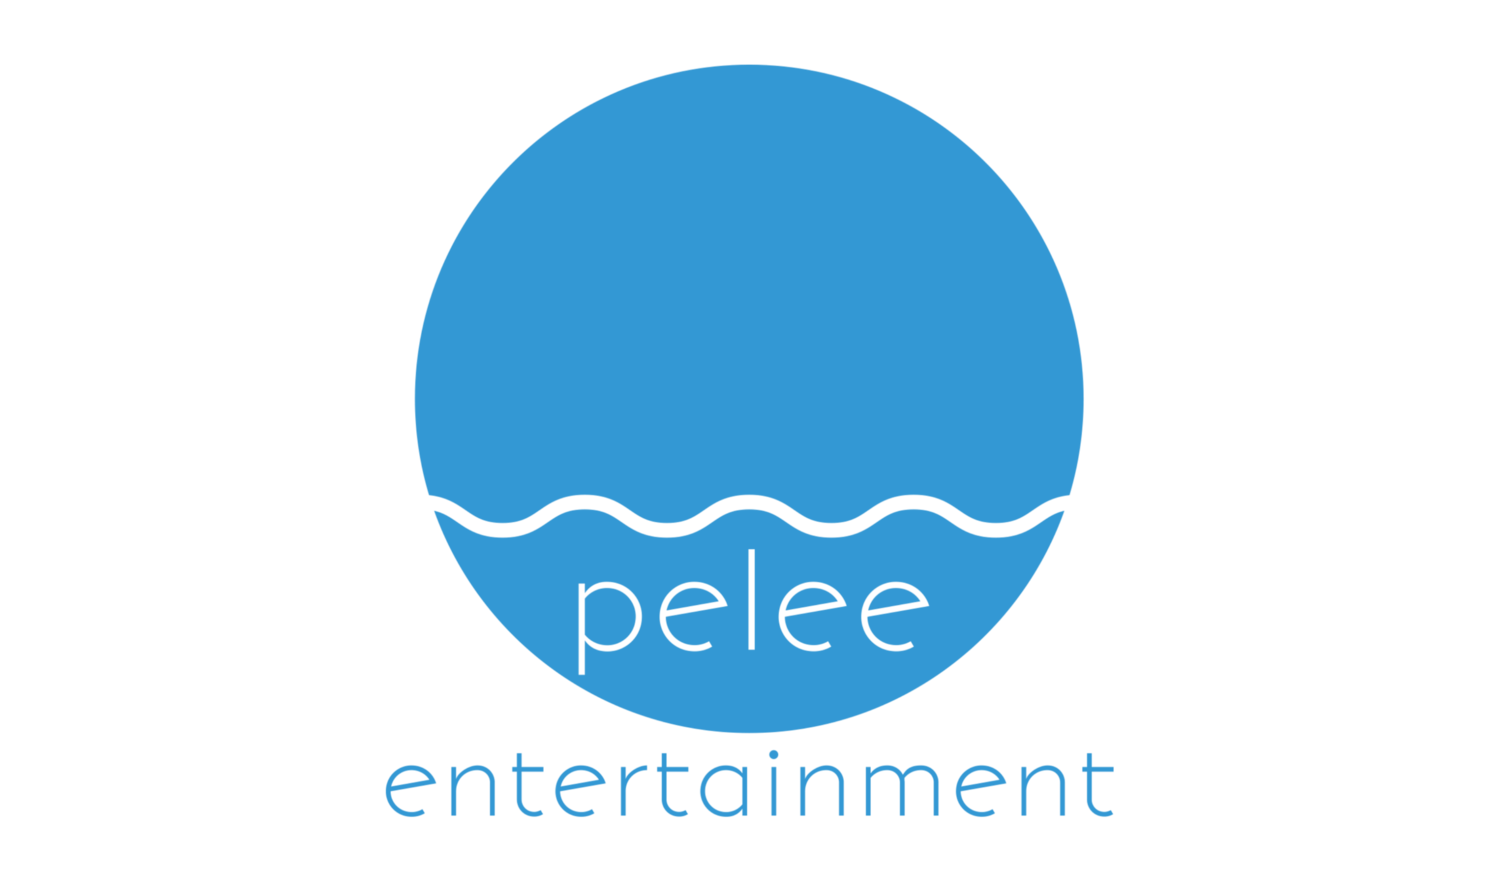 Pelee Entertainment